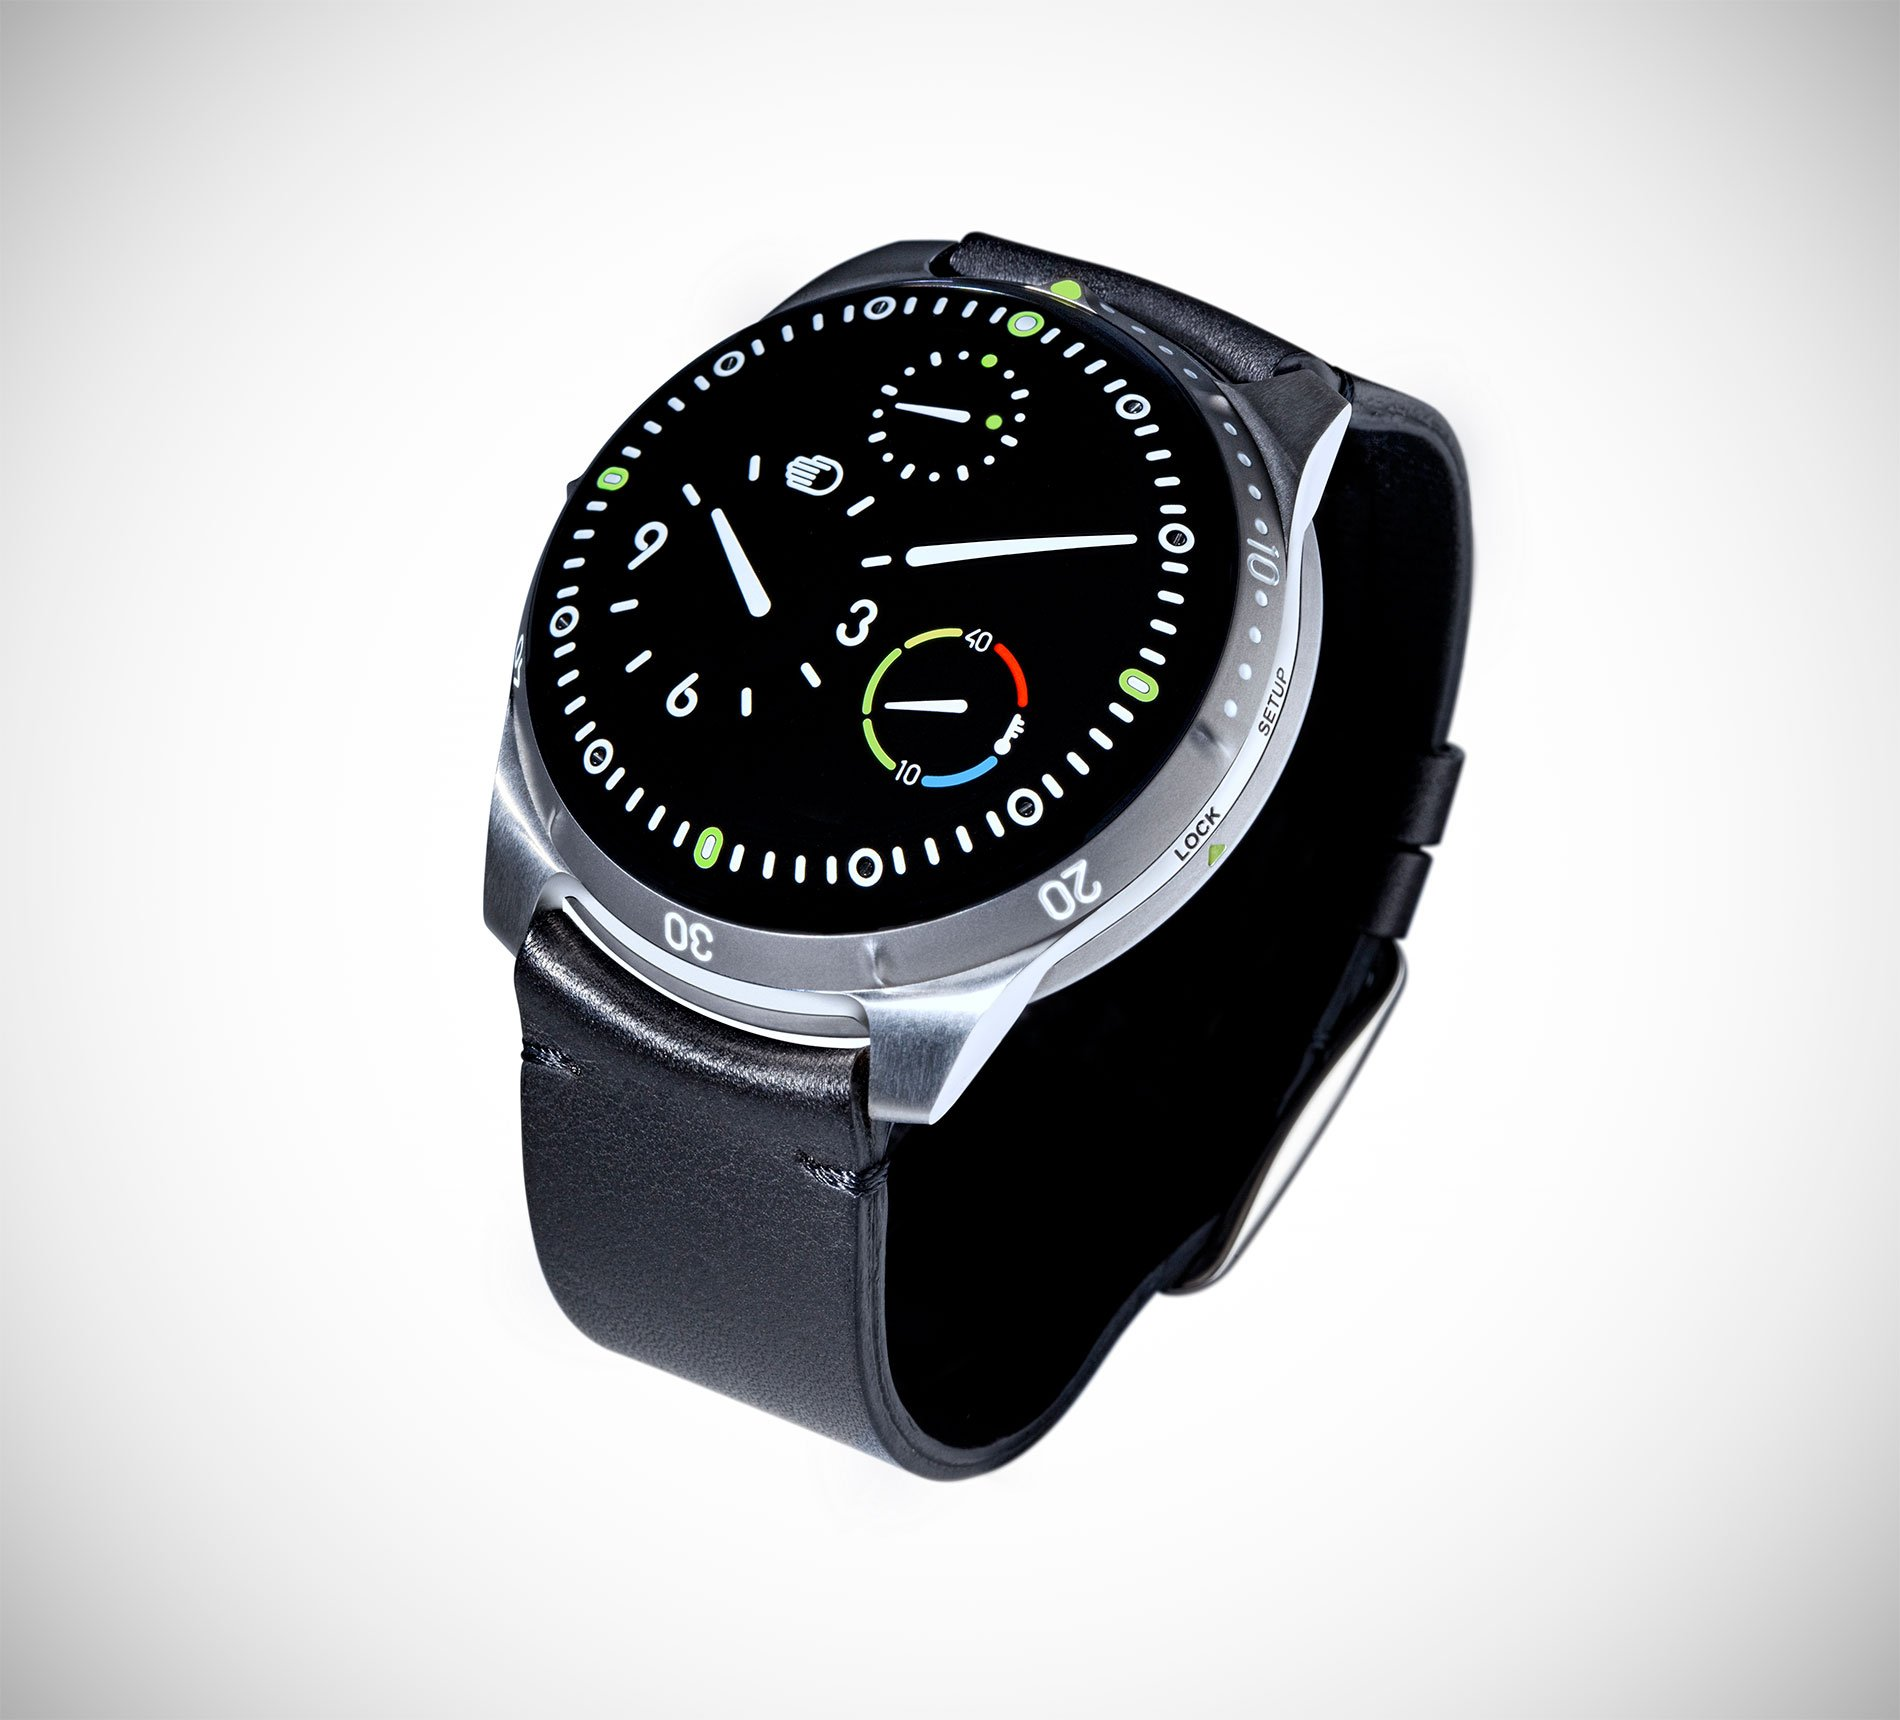 ressence-type-5-dive-watch-4